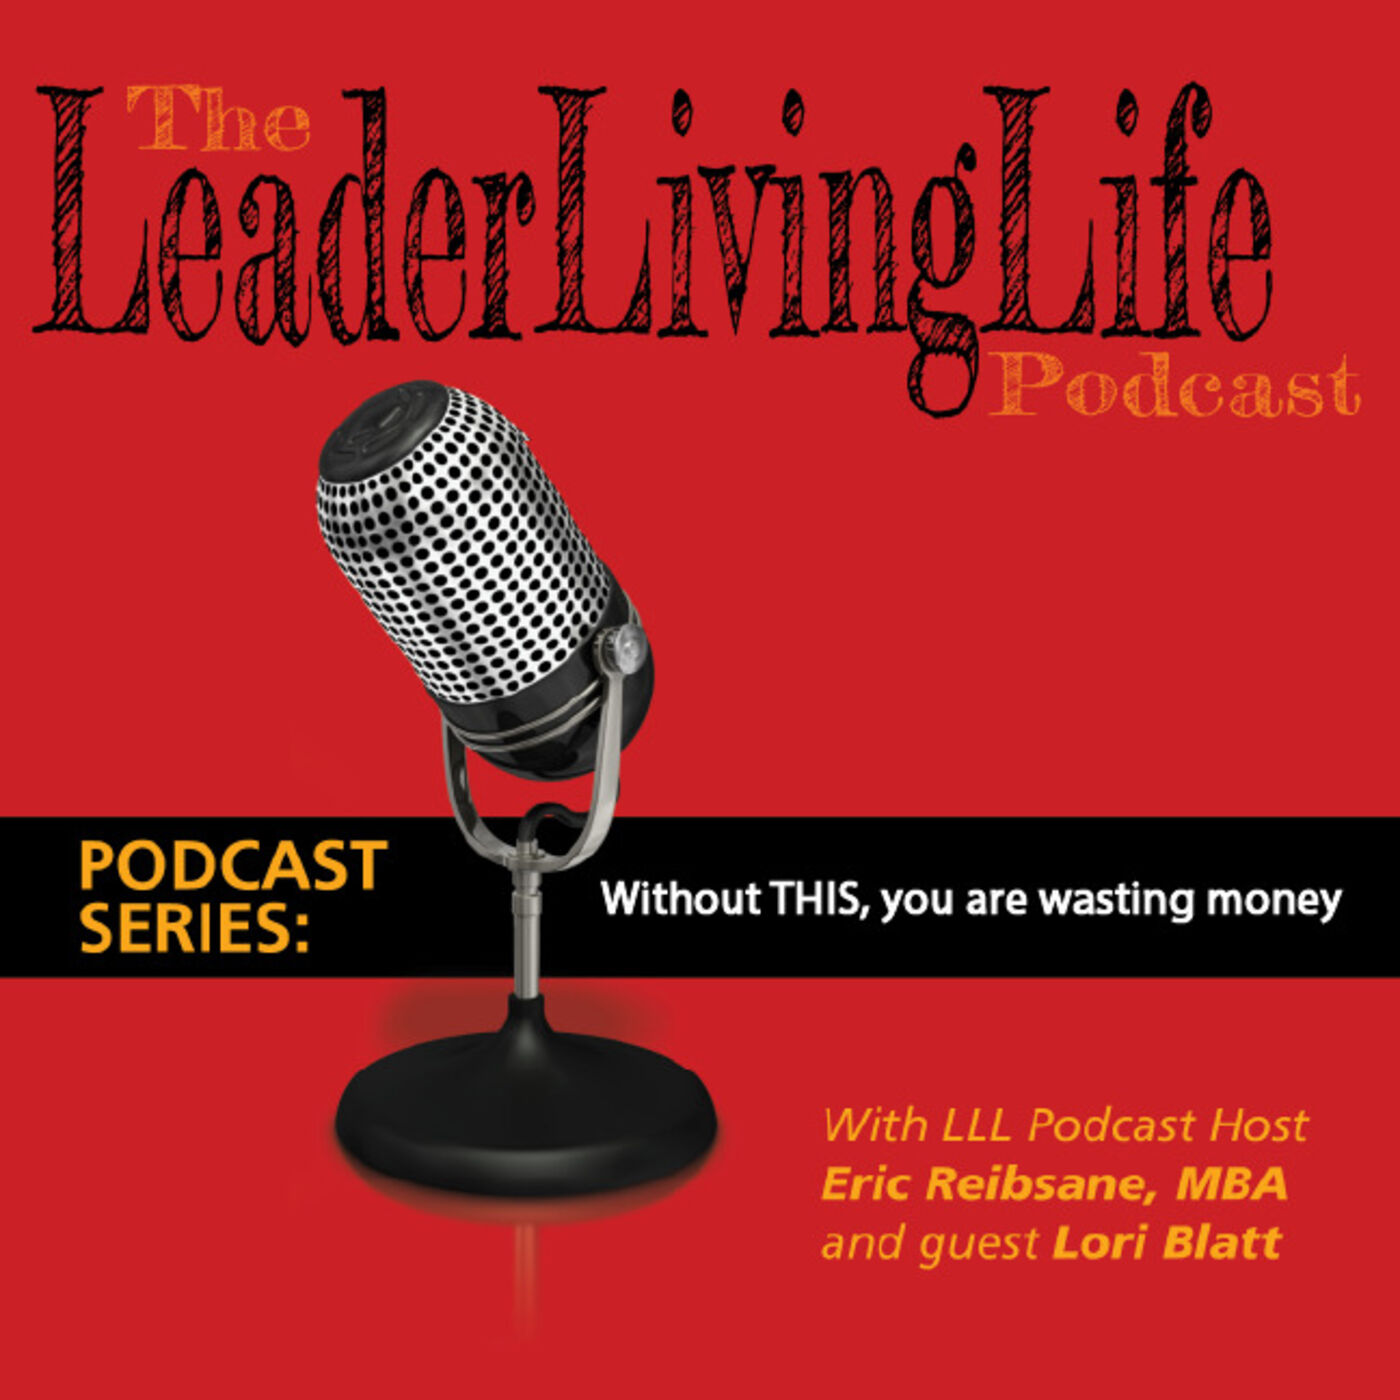 """""""Without THIS, you are wasting money"""" Part 3 in our series on Marketing featuring Lori Blatt"""